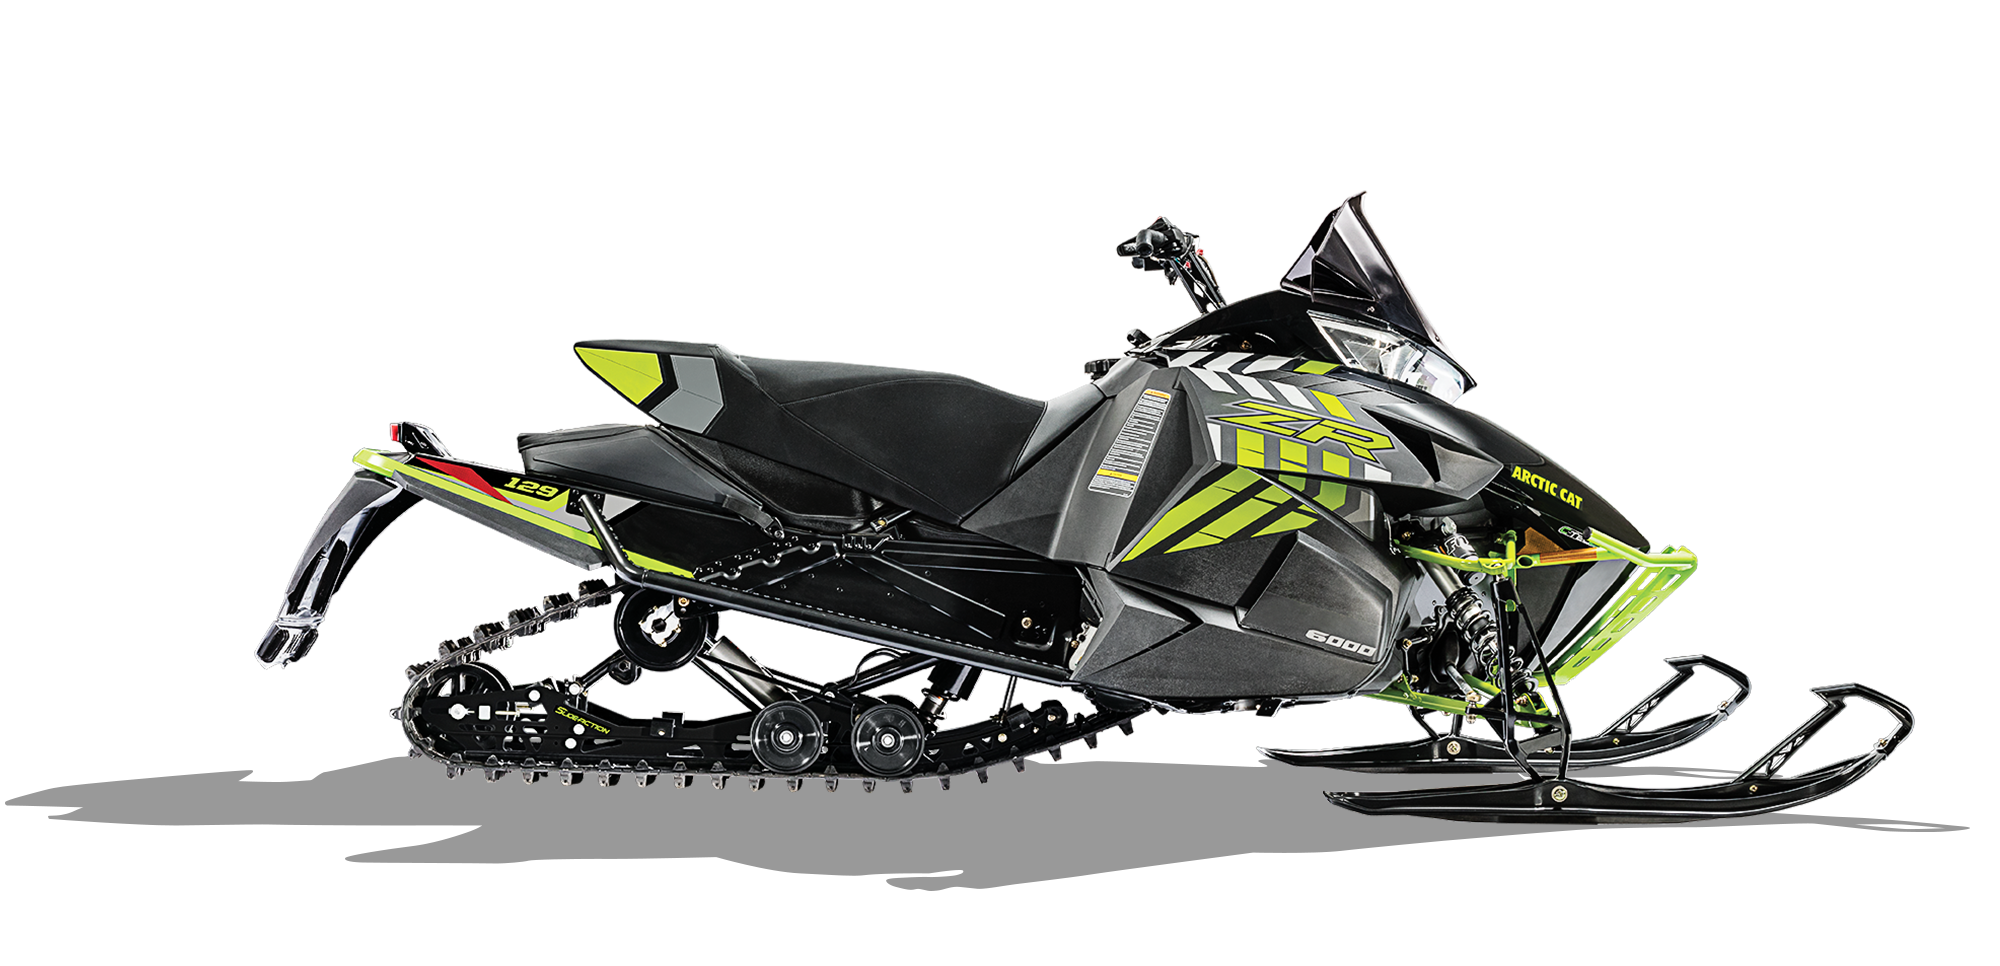 Artic cat snowmobile clipart black and white vector black and white ZR 6000 Limited ES (129) | Arctic Cat vector black and white